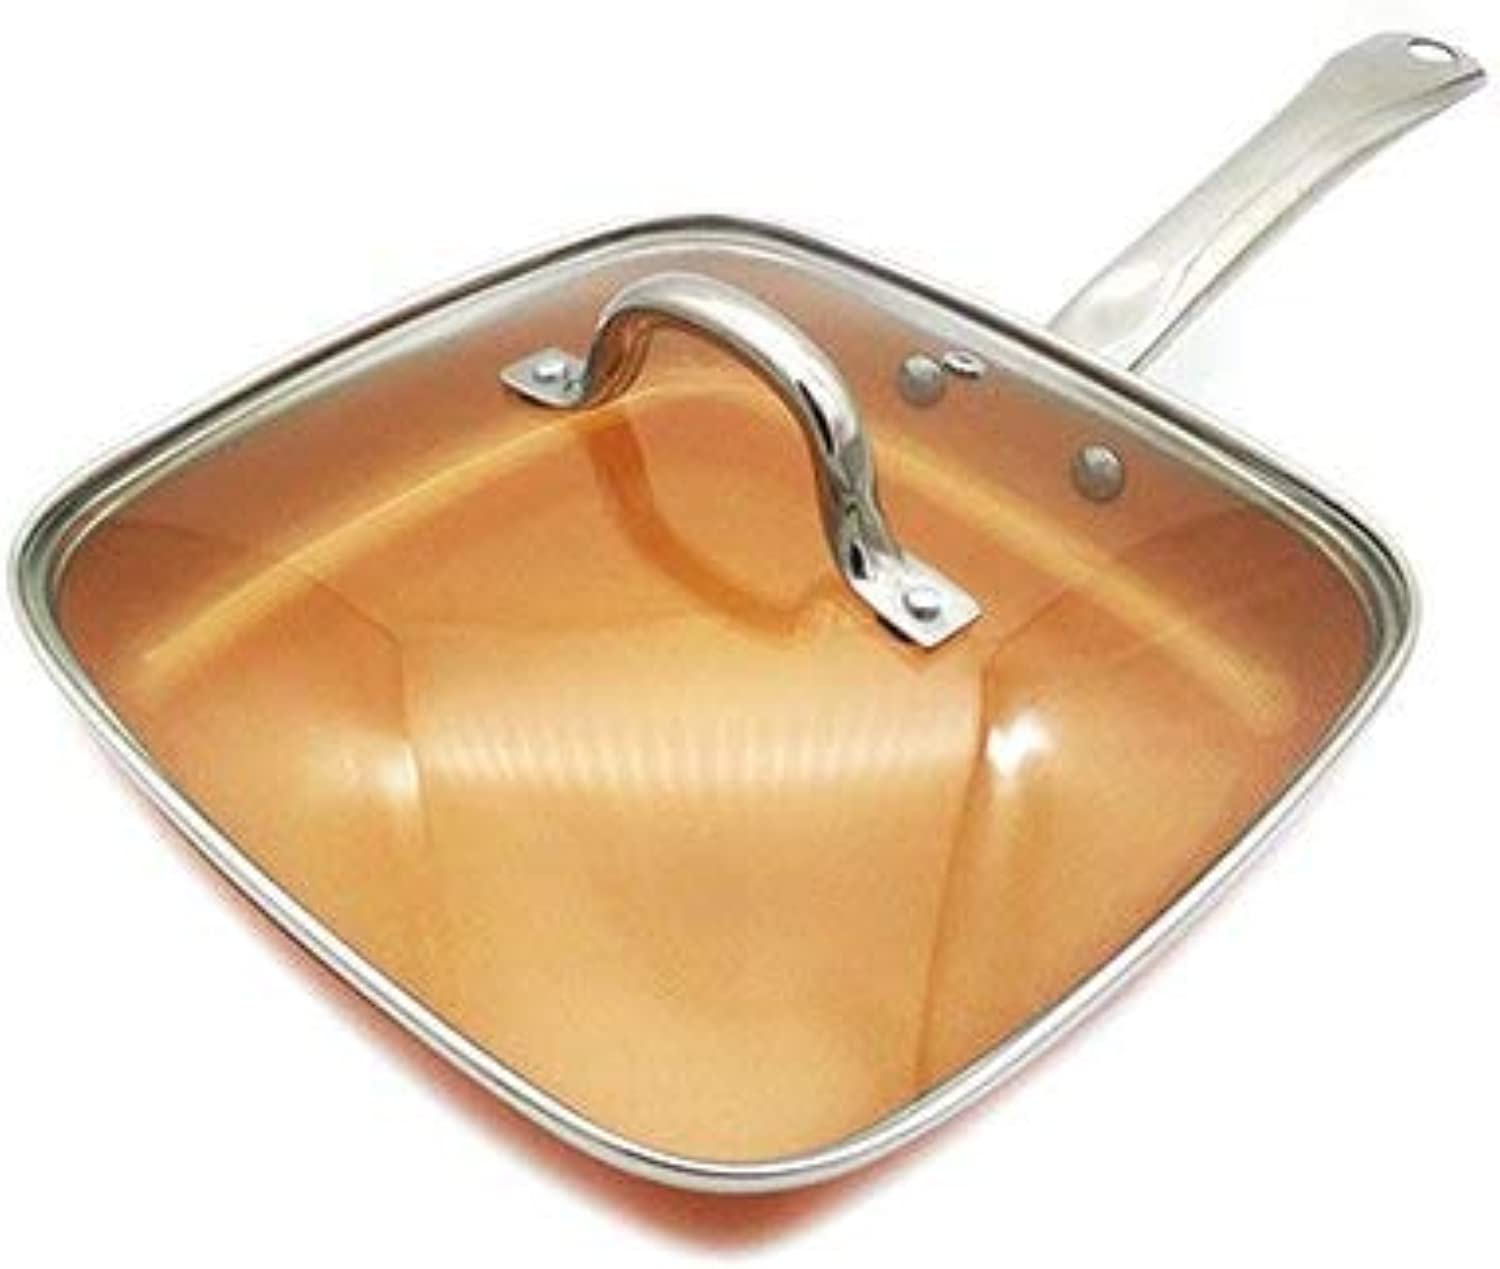 Transhome Copper Pans 24cm Nonstick Deep Square Induction Fry Pan Alloy Dishwasher Safe Oven Safe Saute Pans Kitchen Accessories   with Cover